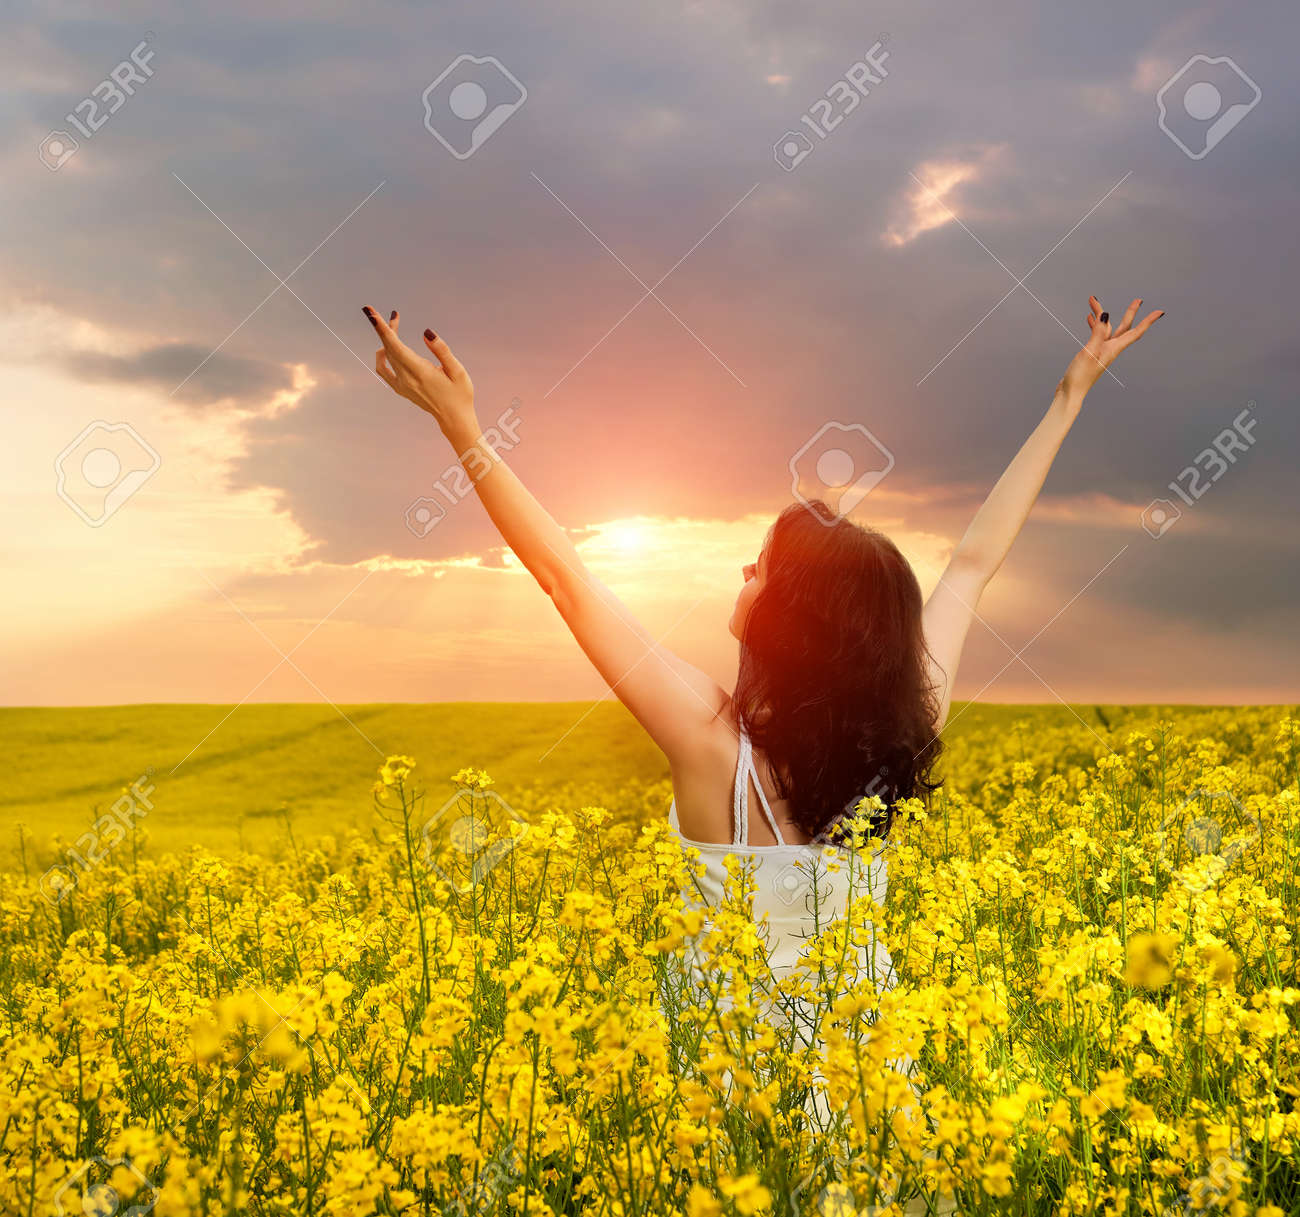 Woman In Field With Yellow Flowers At Summer Sunset Stock Photo